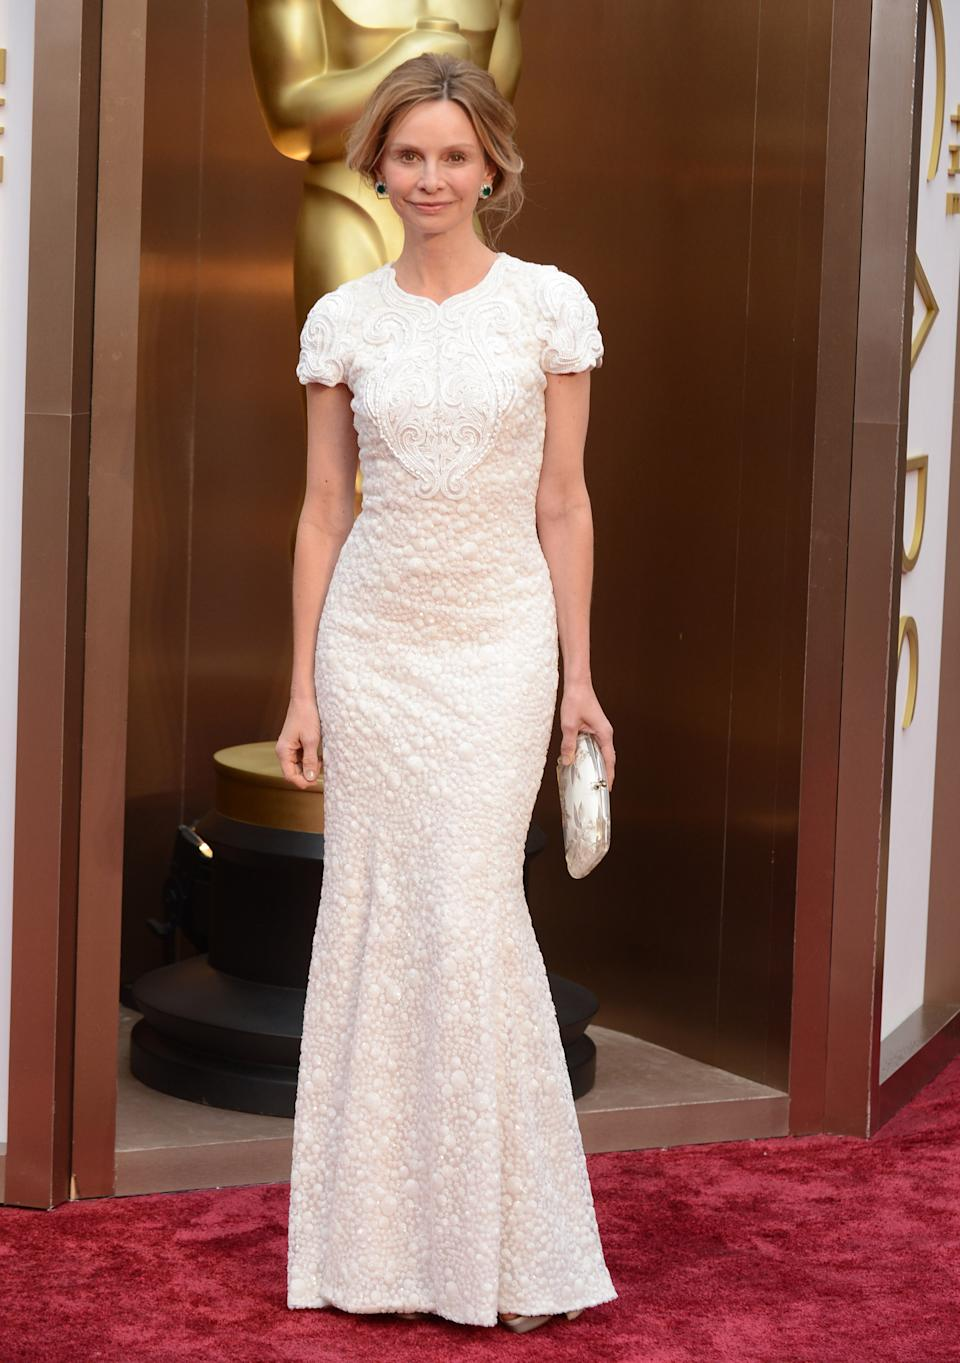 Calista Flockhart arrives at the Oscars on Sunday, March 2, 2014, at the Dolby Theatre in Los Angeles. (Photo by Jordan Strauss/Invision/AP)